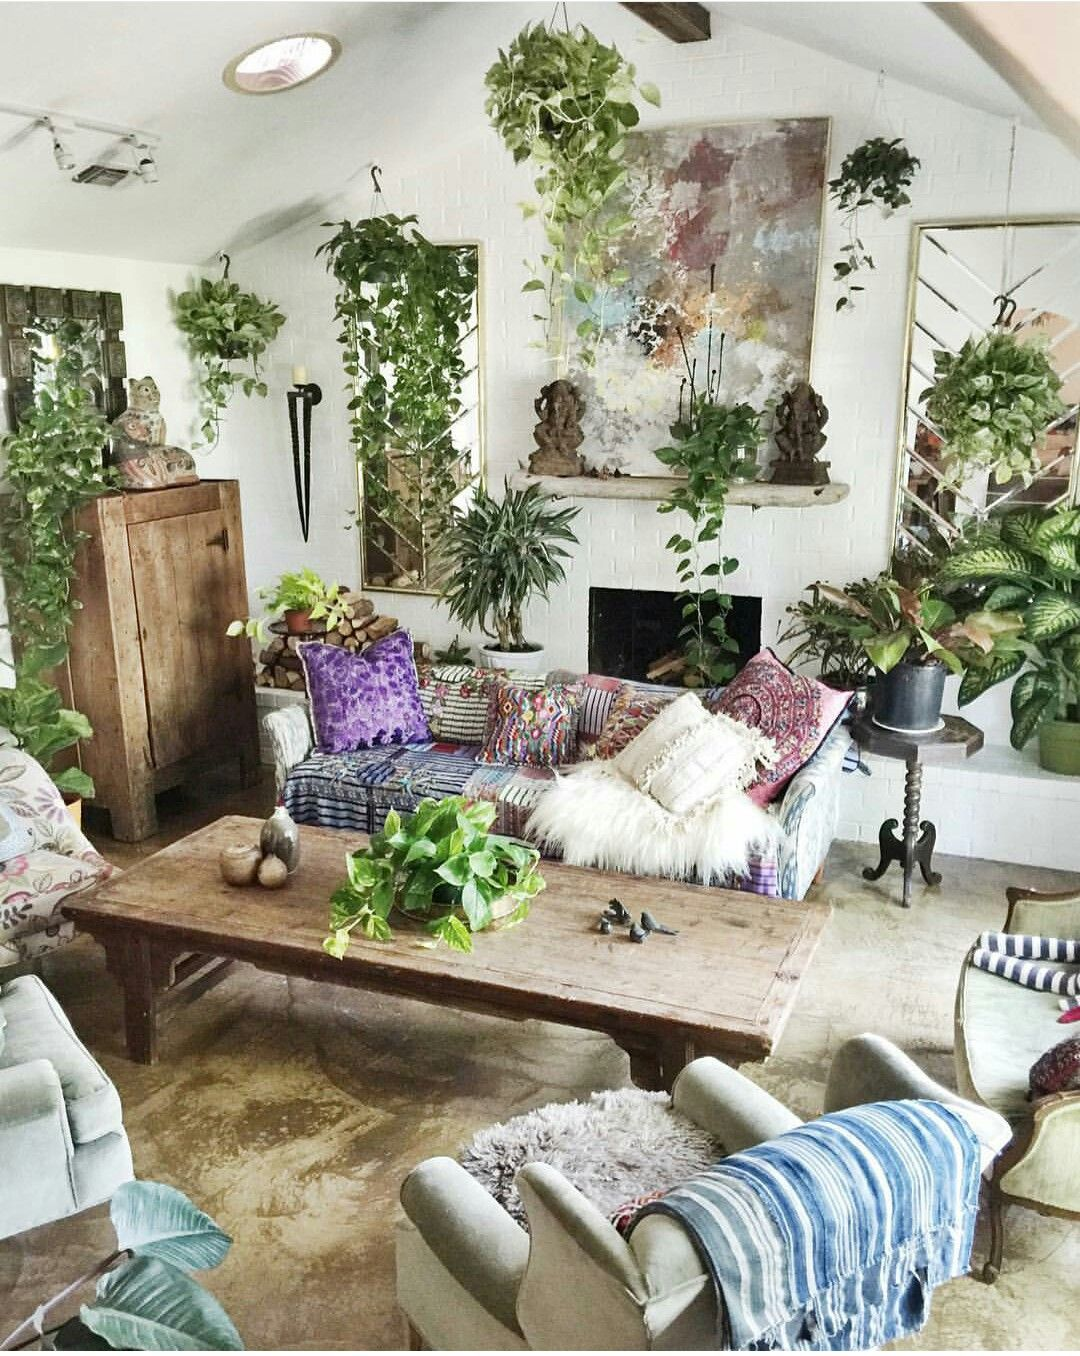 Small Boho Living Room: Hippie Home Decor, Decor, Home Decor